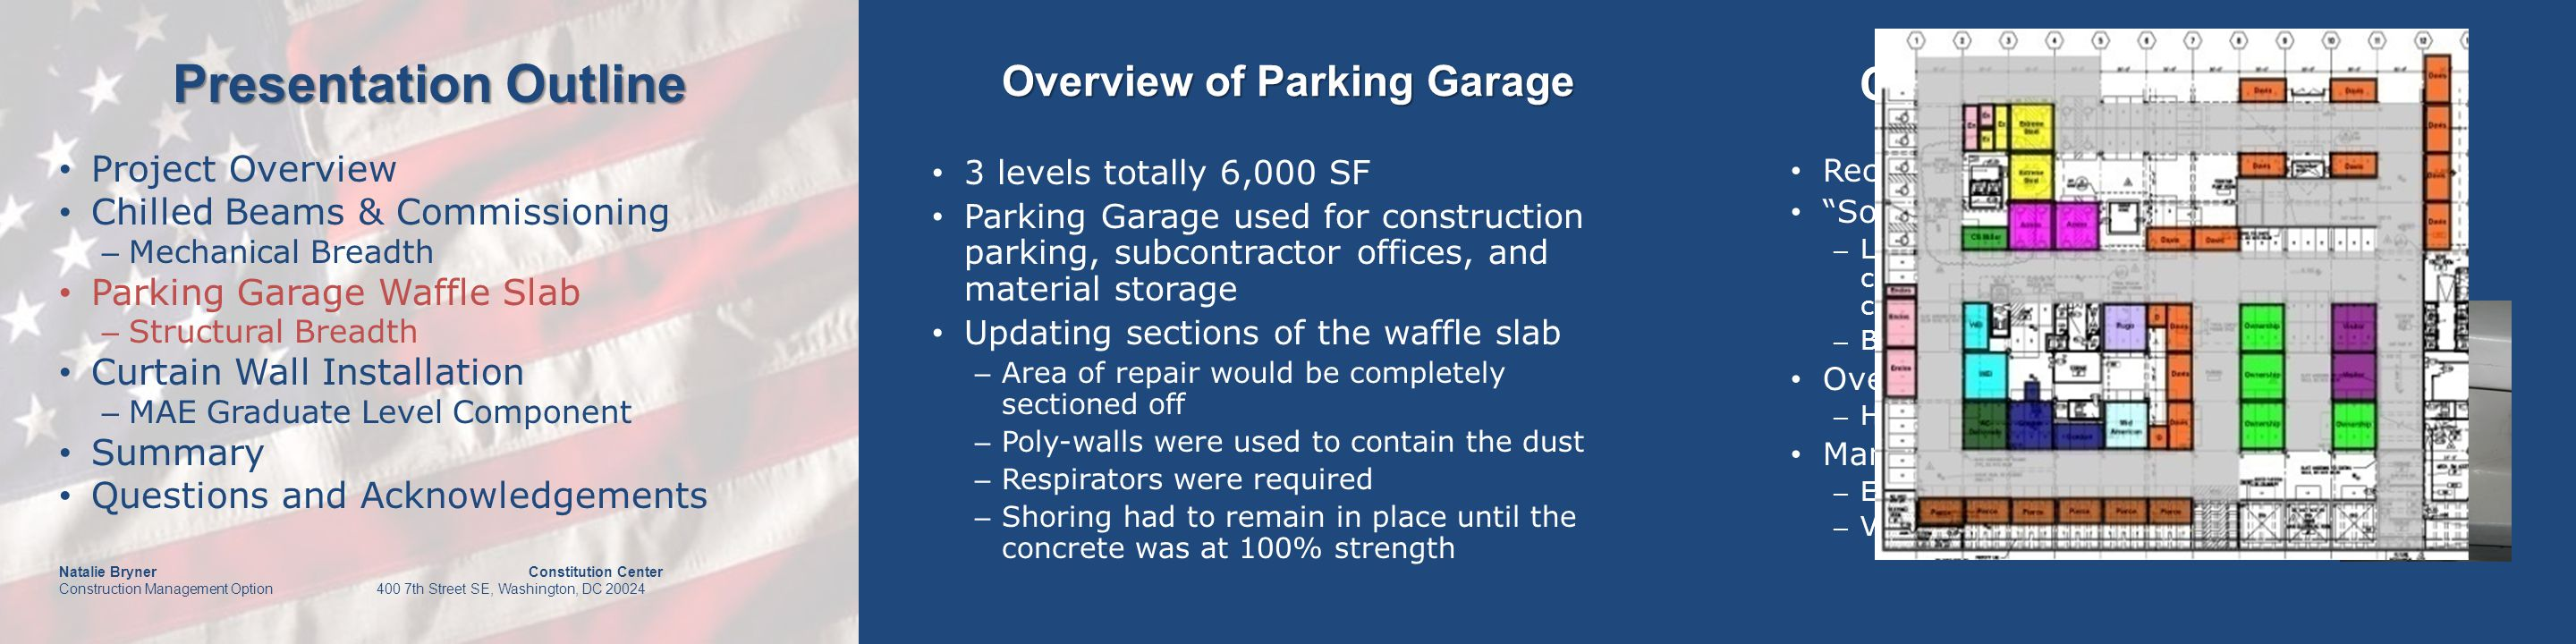 Presentation Outline Natalie Bryner Constitution Center Construction Management Option 400 7th Street SE, Washington, DC 20024 Overview of Parking Garage Recommendations of the engineers Sounding Test – Listening to the tones of the reverberations caused by dragging heavy chains over the concrete – Bad concrete made a hollow sound Overhead Test – Hammer or pole used Manual Inspection Test – Exposed and/or corroded rebar – Visual spalled sections.